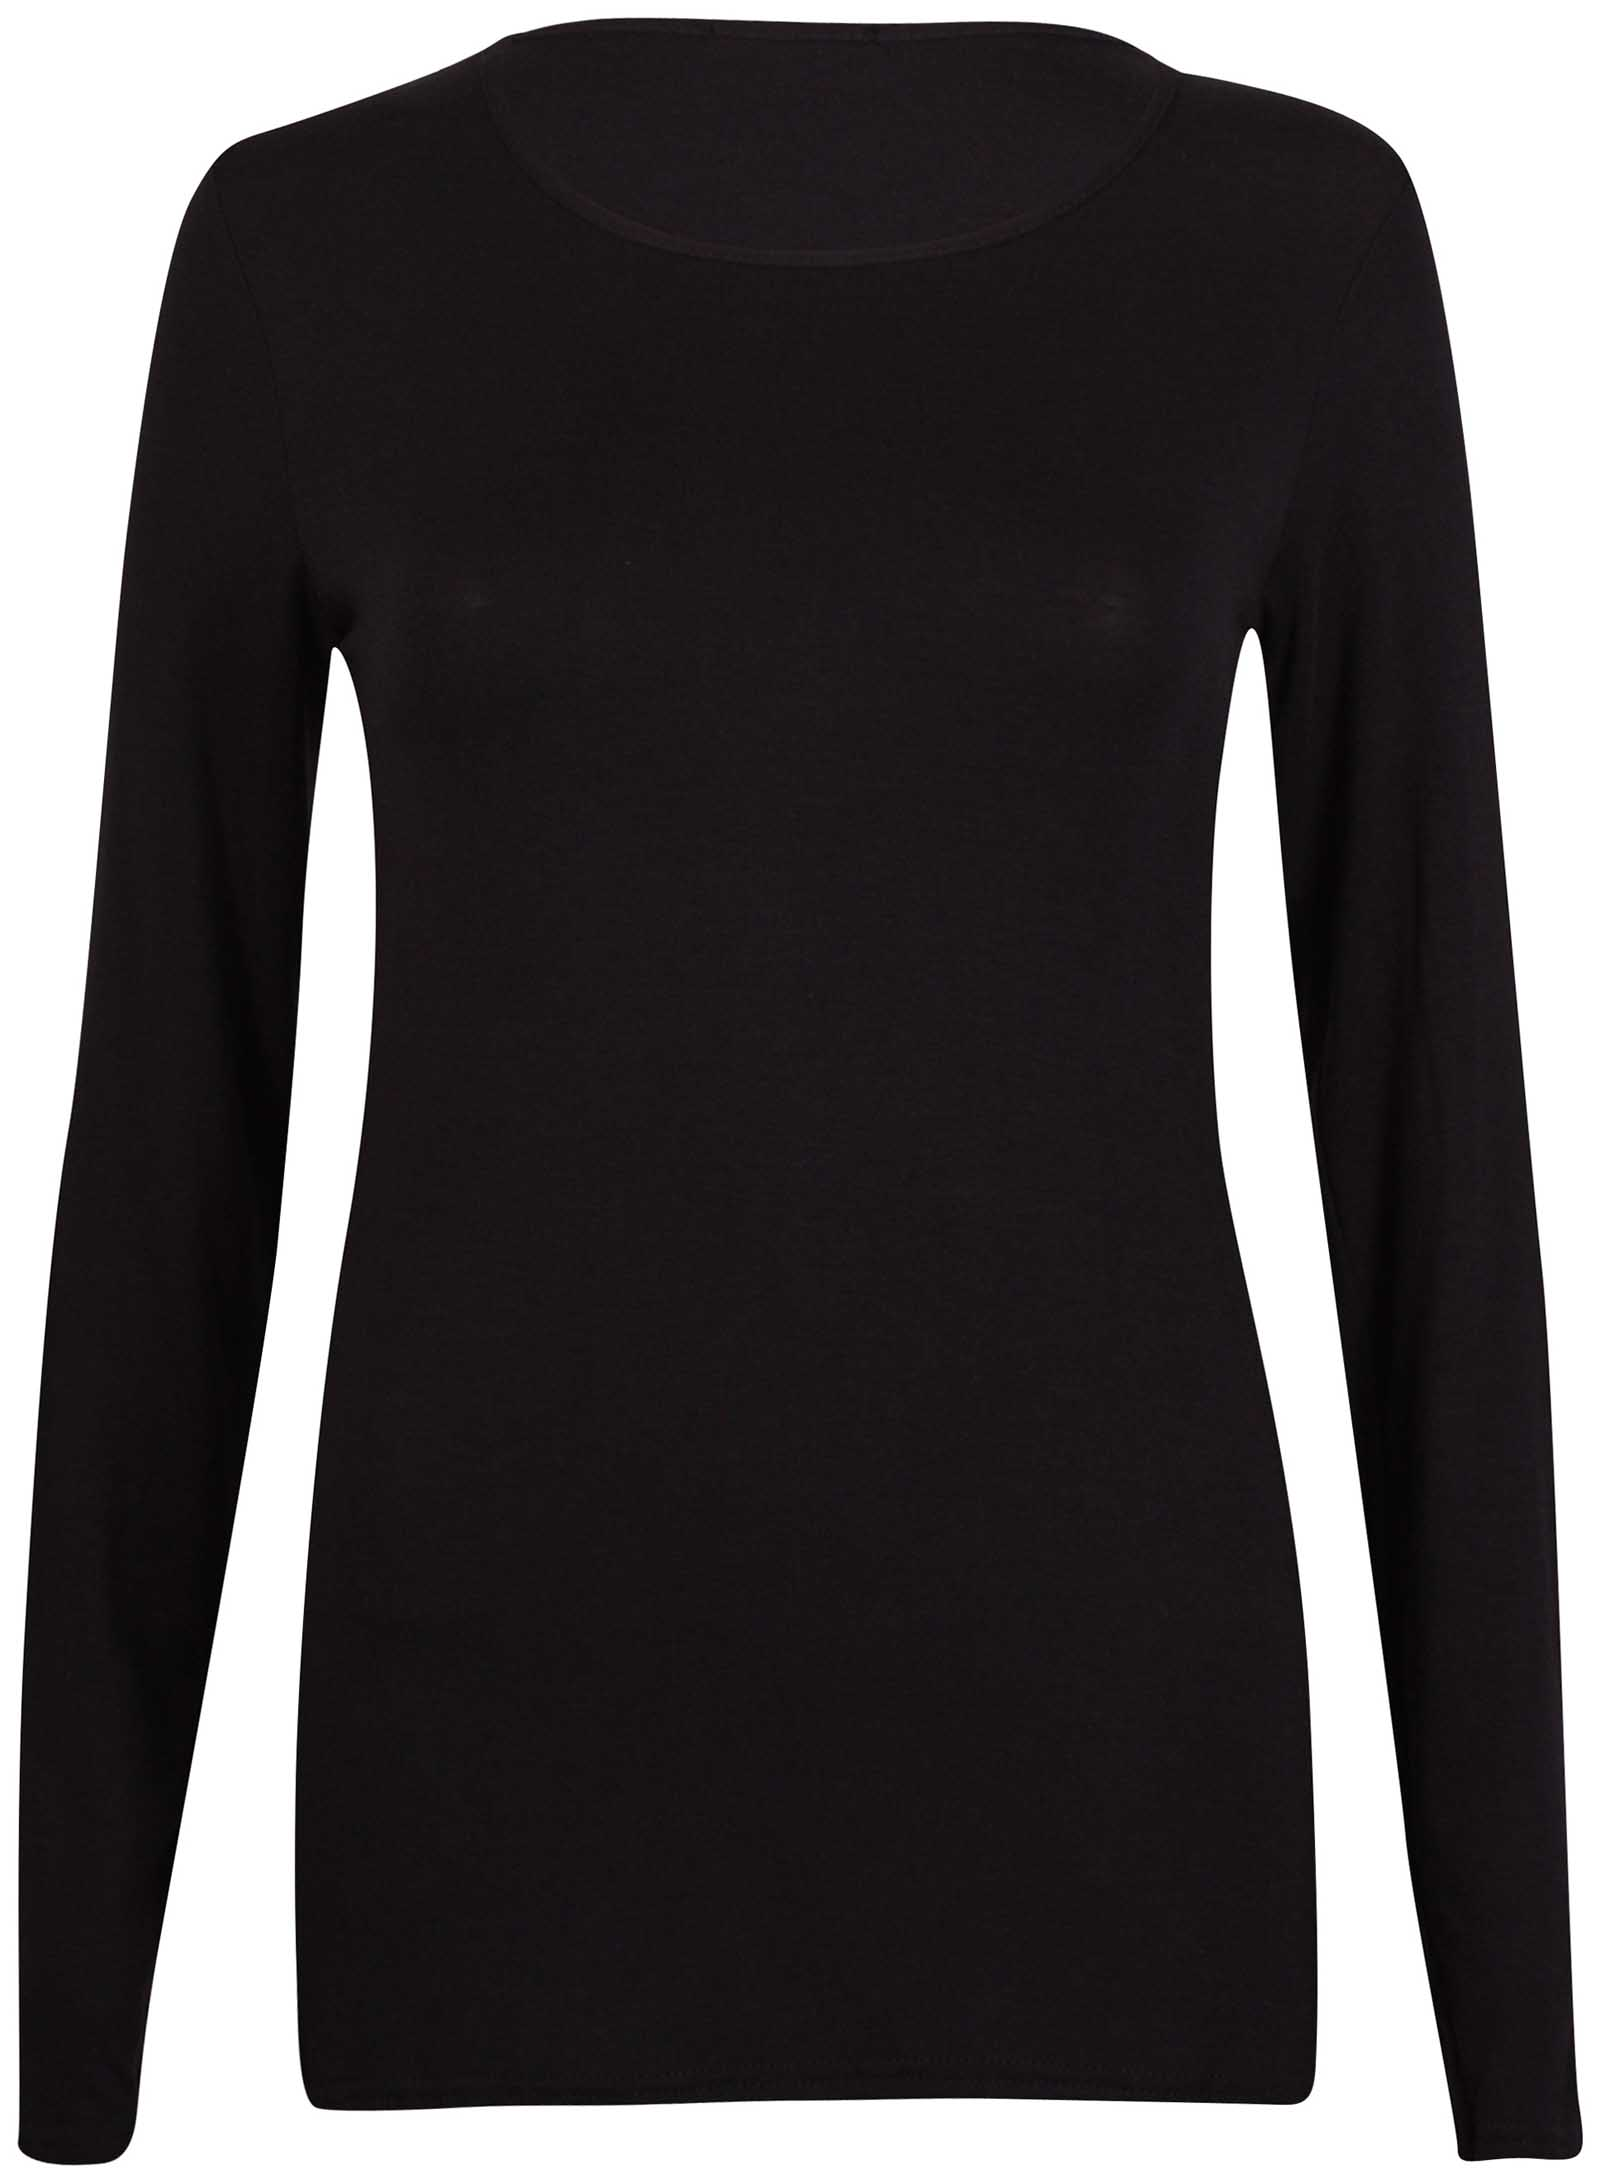 Overstock uses cookies to ensure you get the best experience on our site. If you continue on our site, you consent to the use of such cookies. Learn more. OK Tops Simply Ravishing Women's Assymetrical Front/Back Handkerchief Hem Long Sleeve Tunic Top. Reviews.